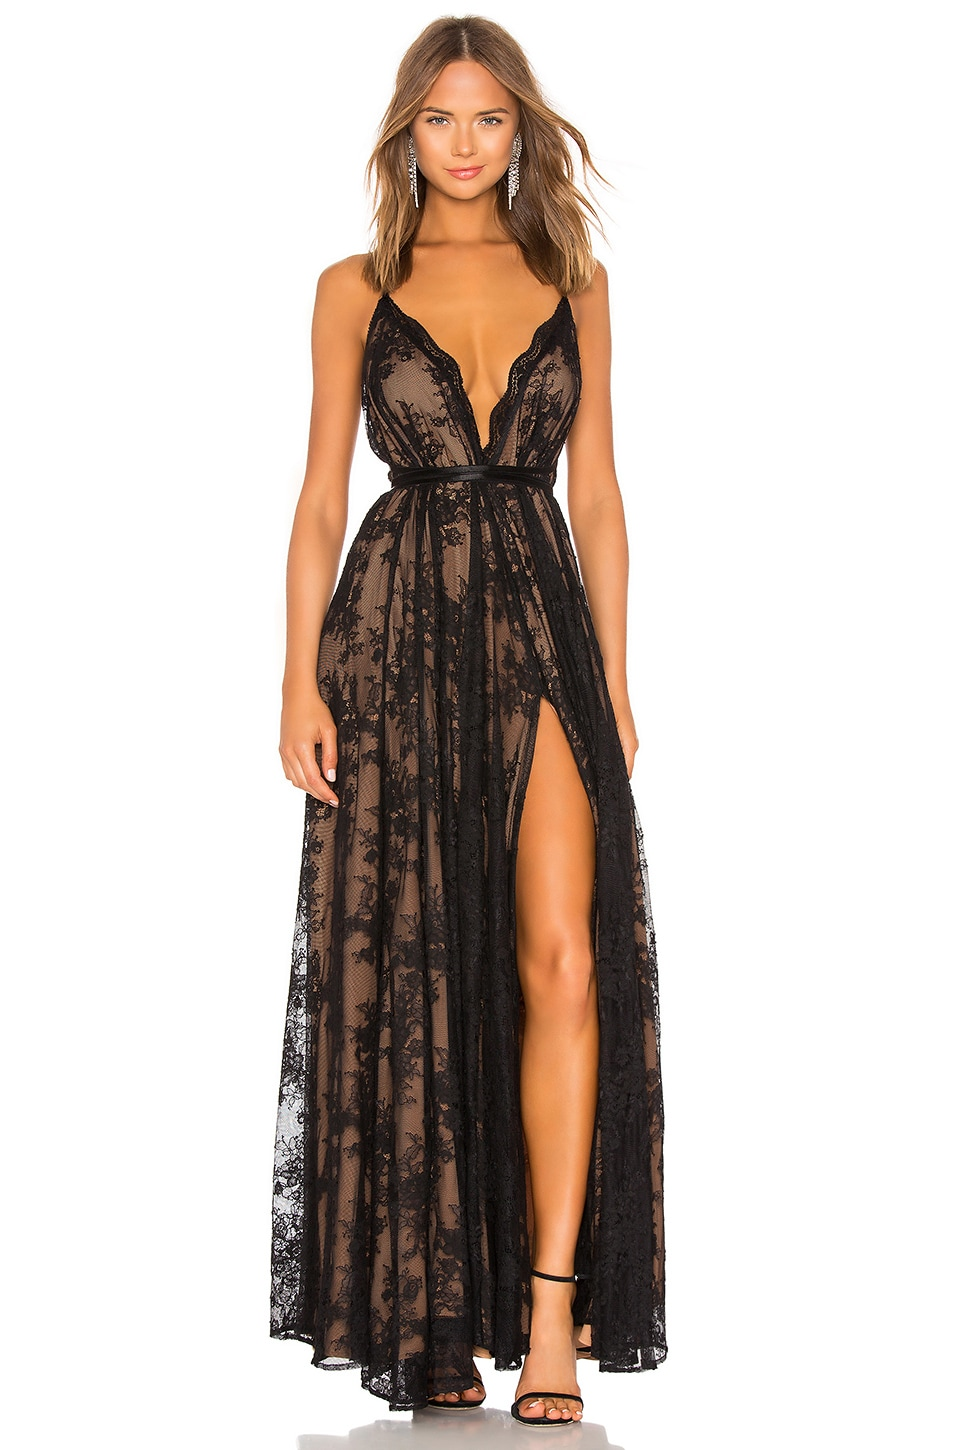 58759e89088 Michael Costello x REVOLVE Paris Gown in Black